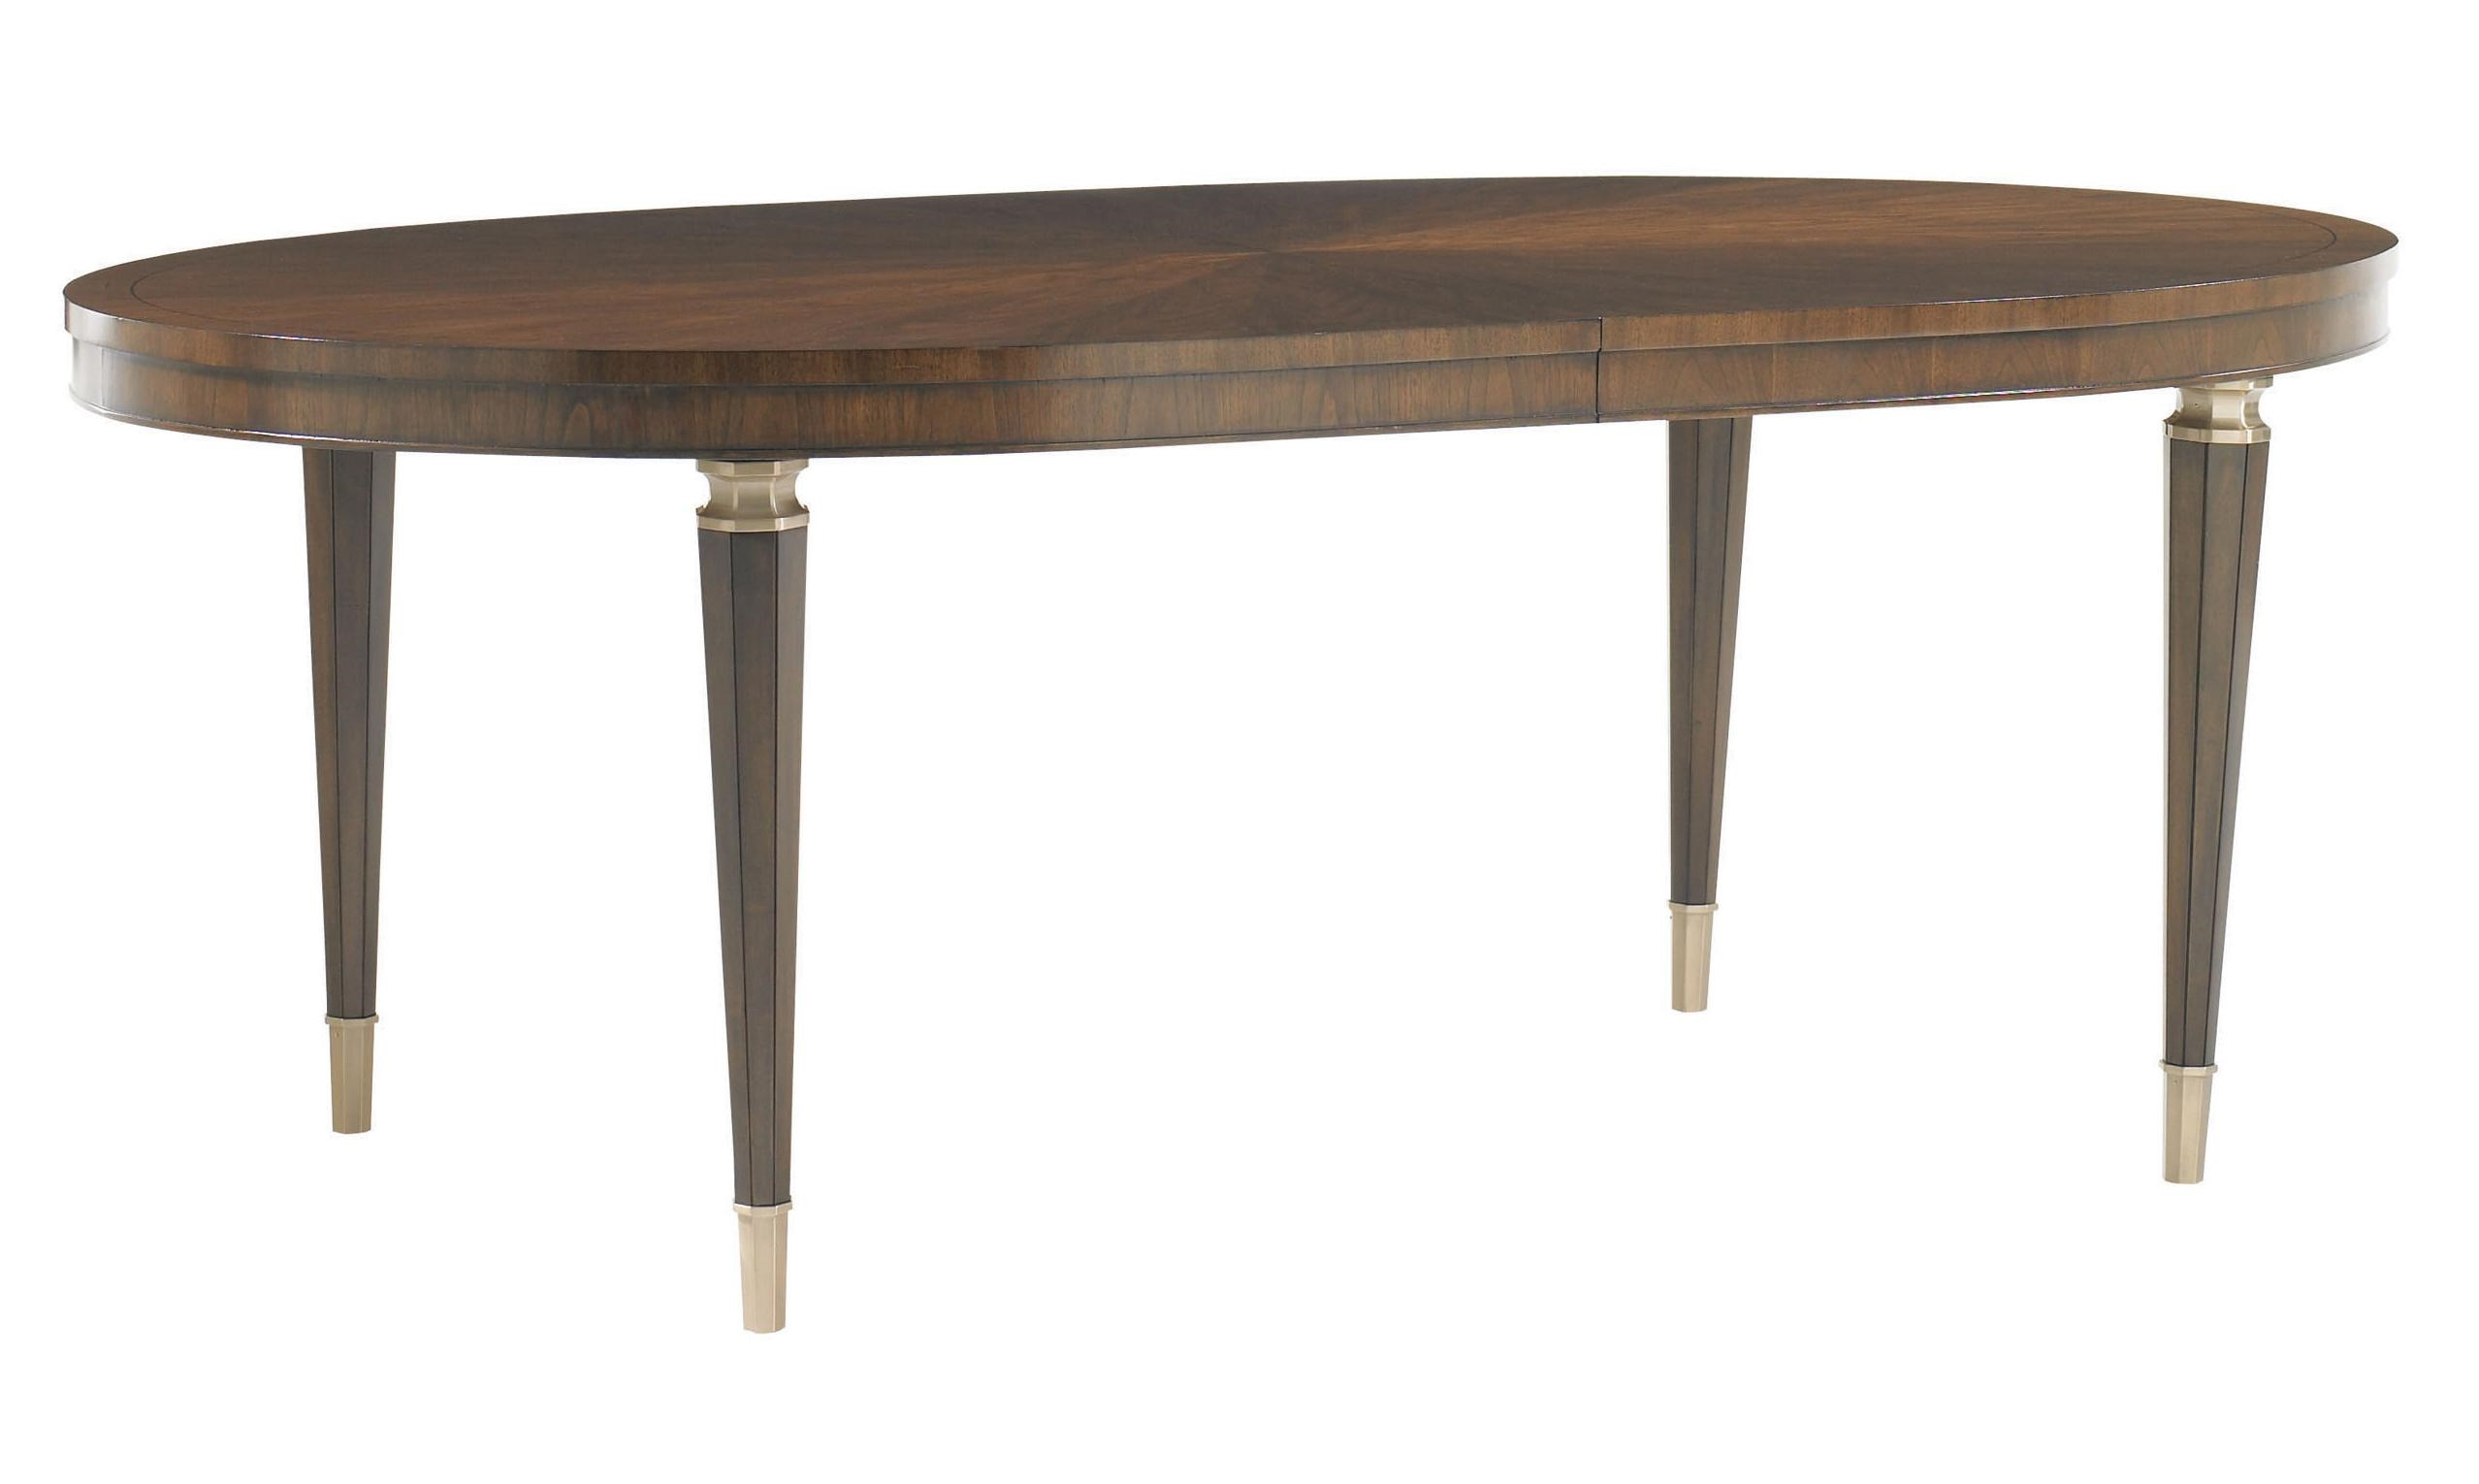 Beau Lexington Tower PlaceDrake Oval Dining Table ...